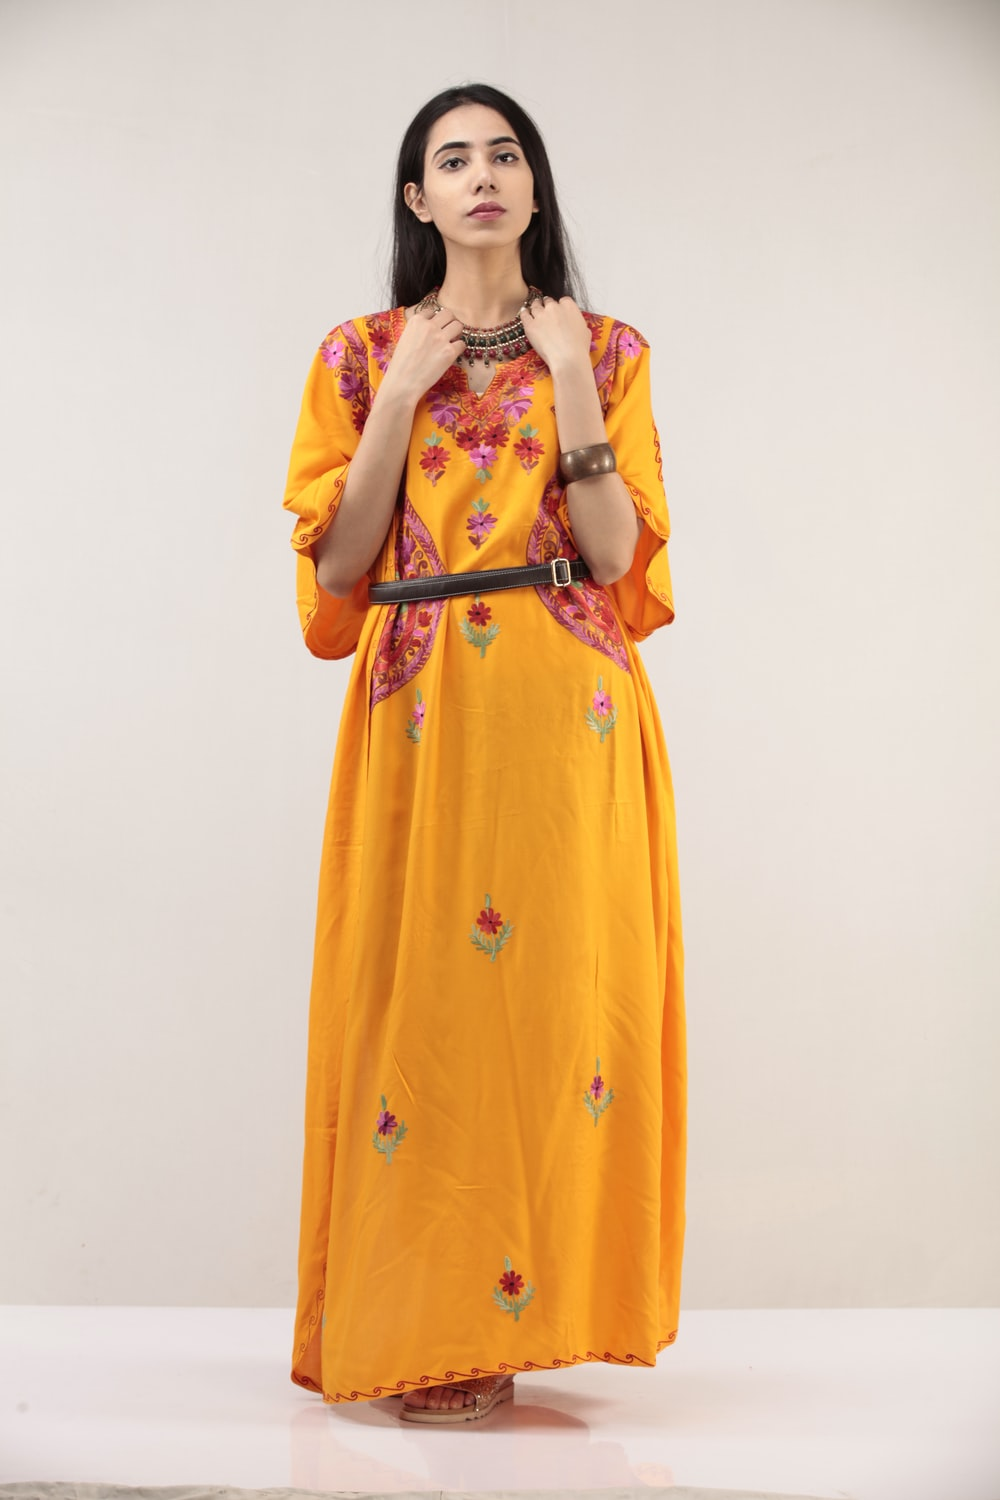 woman in yellow and white floral dress